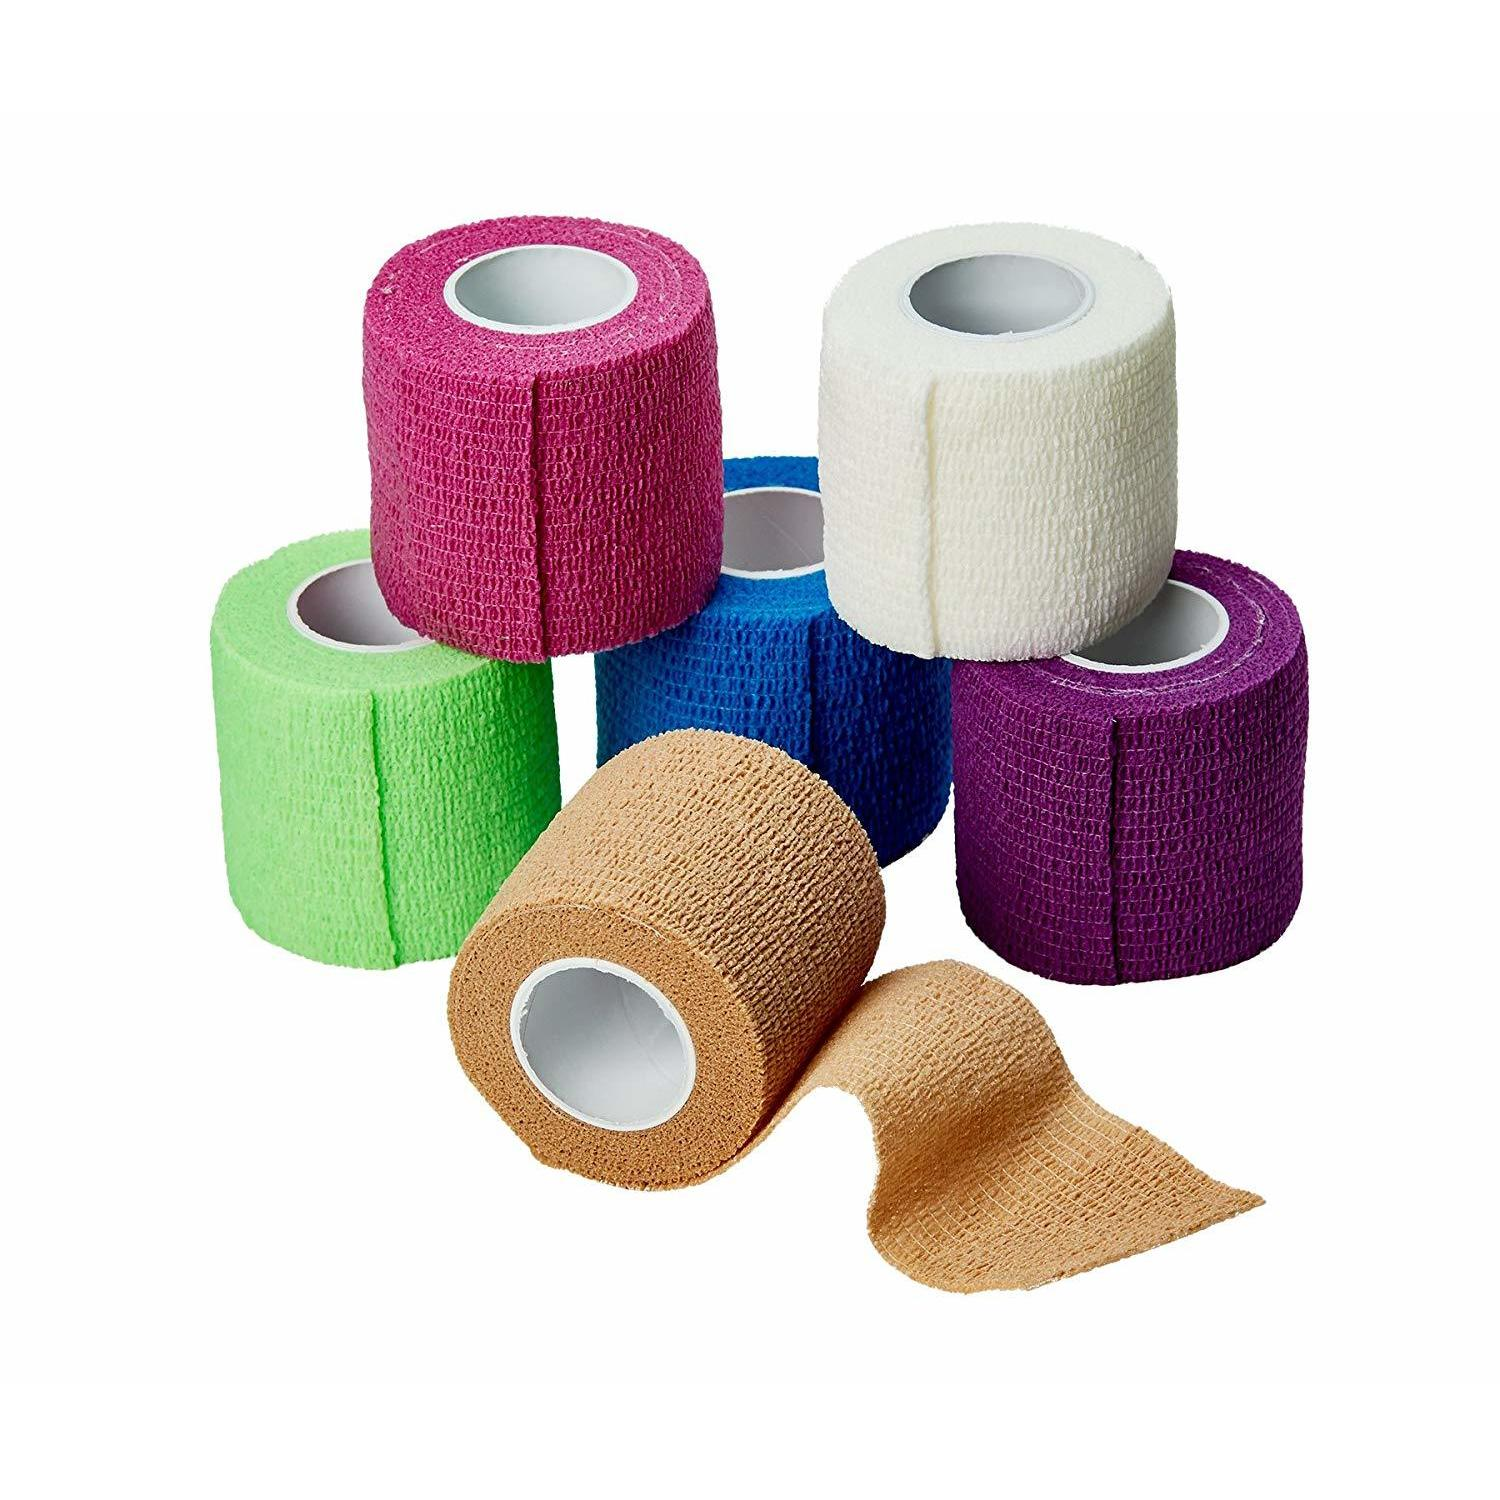 Shop Medca Self Adherent Cohesive Wrap Bandages 2 Inches X 5 Yards